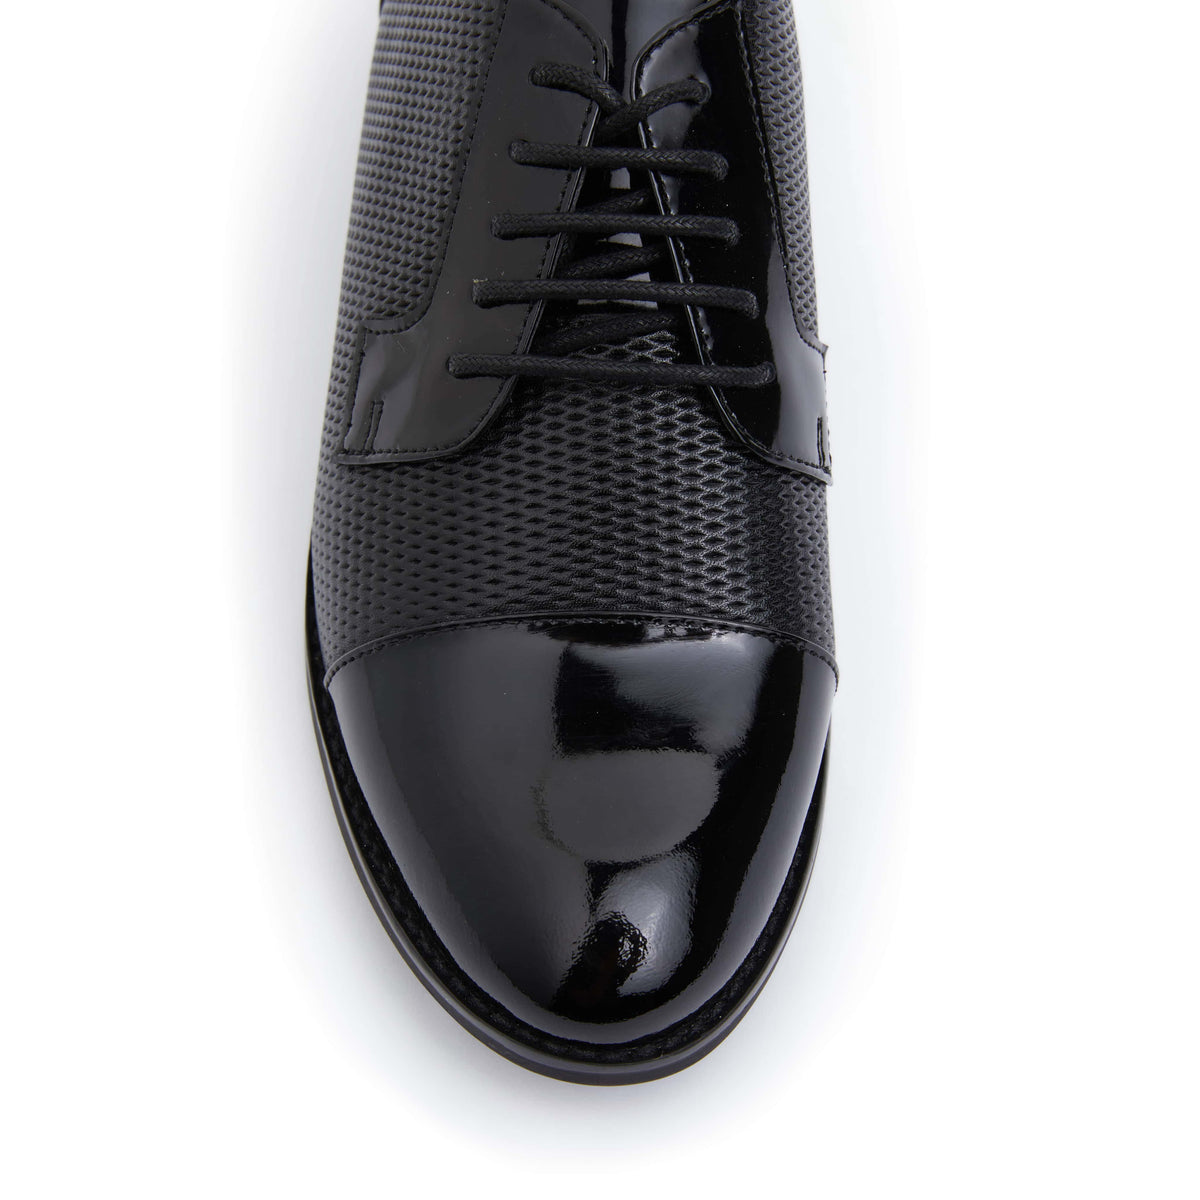 Panache Brogue in Black On Black Patent